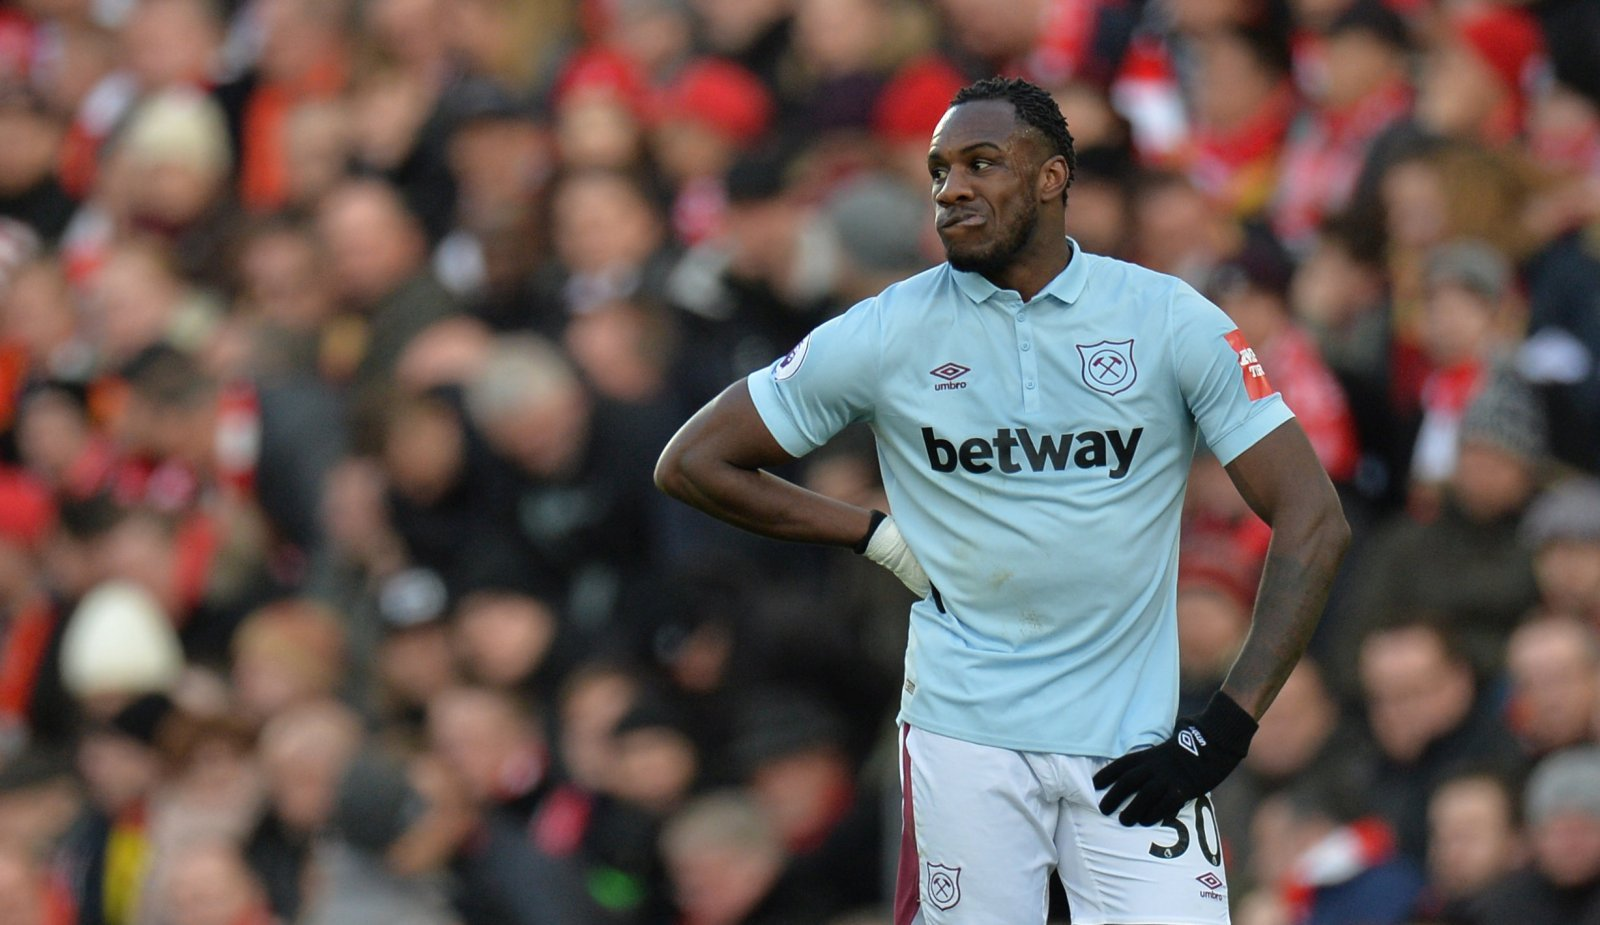 West Ham United: Michail Antonio could miss Wolves clash with injury